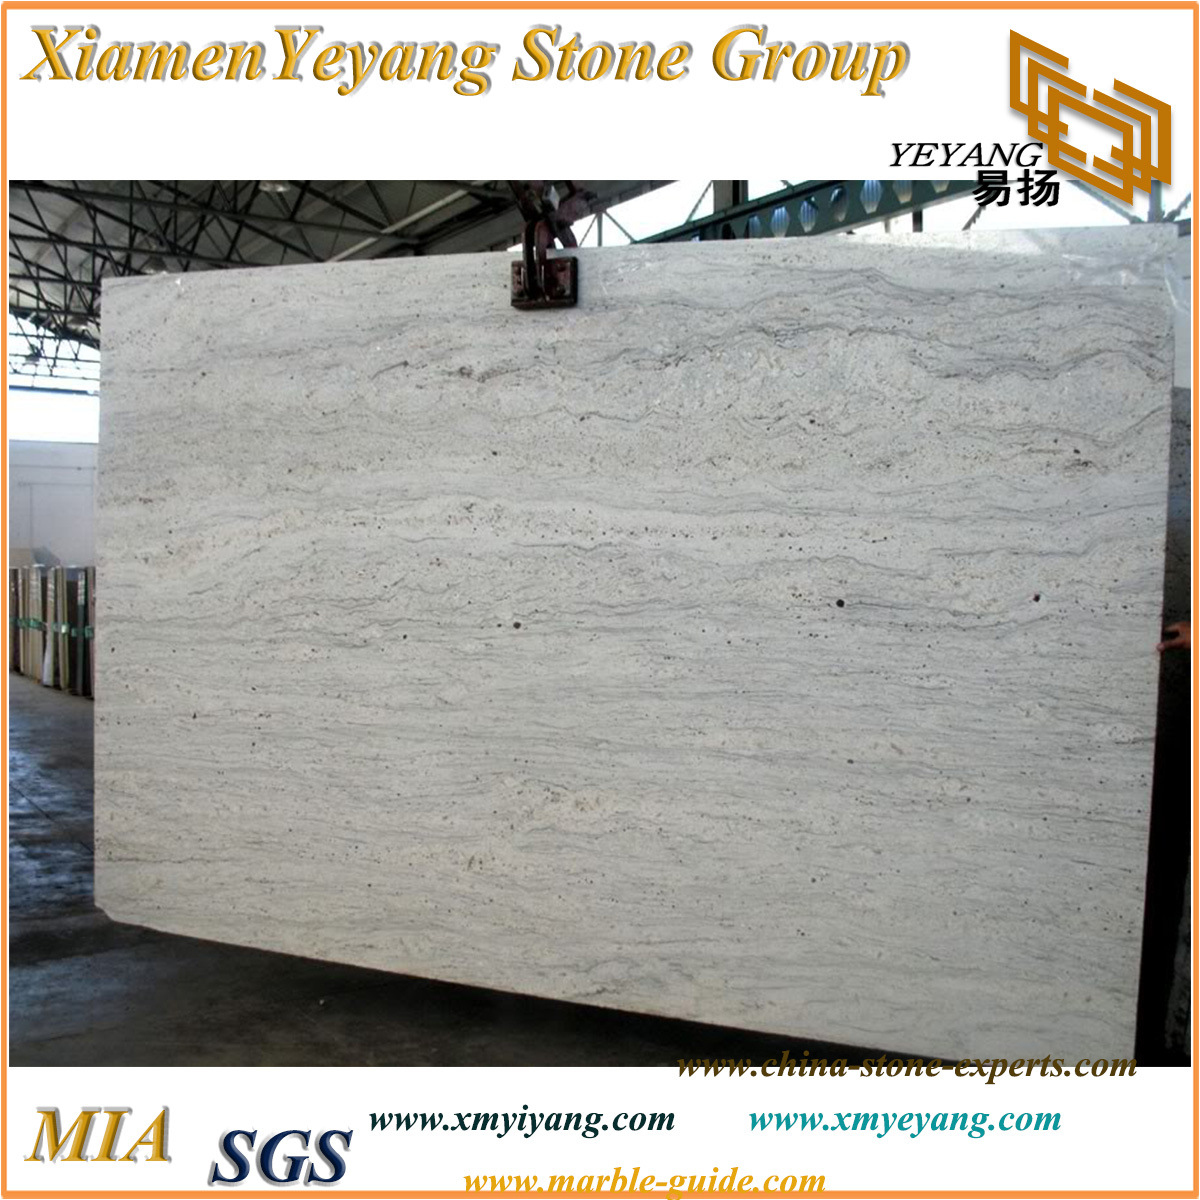 China River White Granite Slabs For Kitchenbathroom Countertops